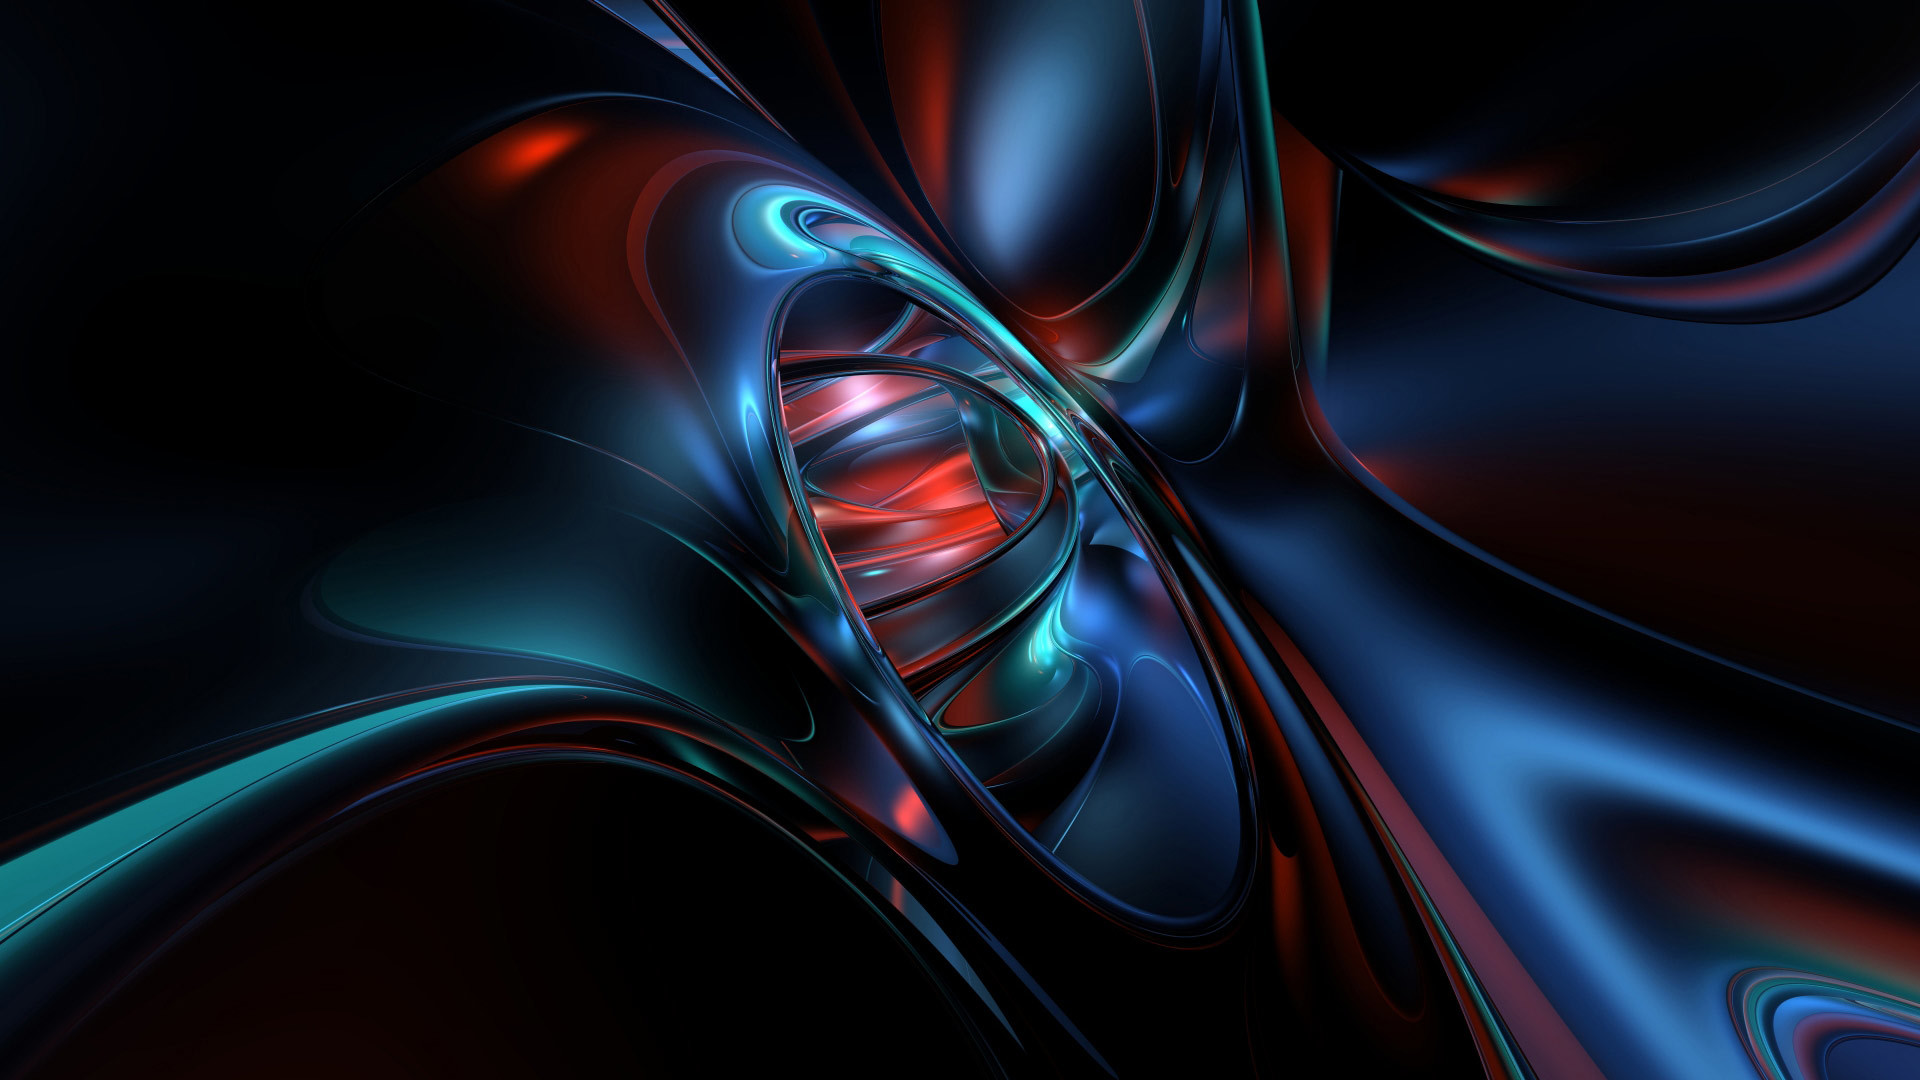 Dark 3D Abstract Wallpapers | HD Wallpapers